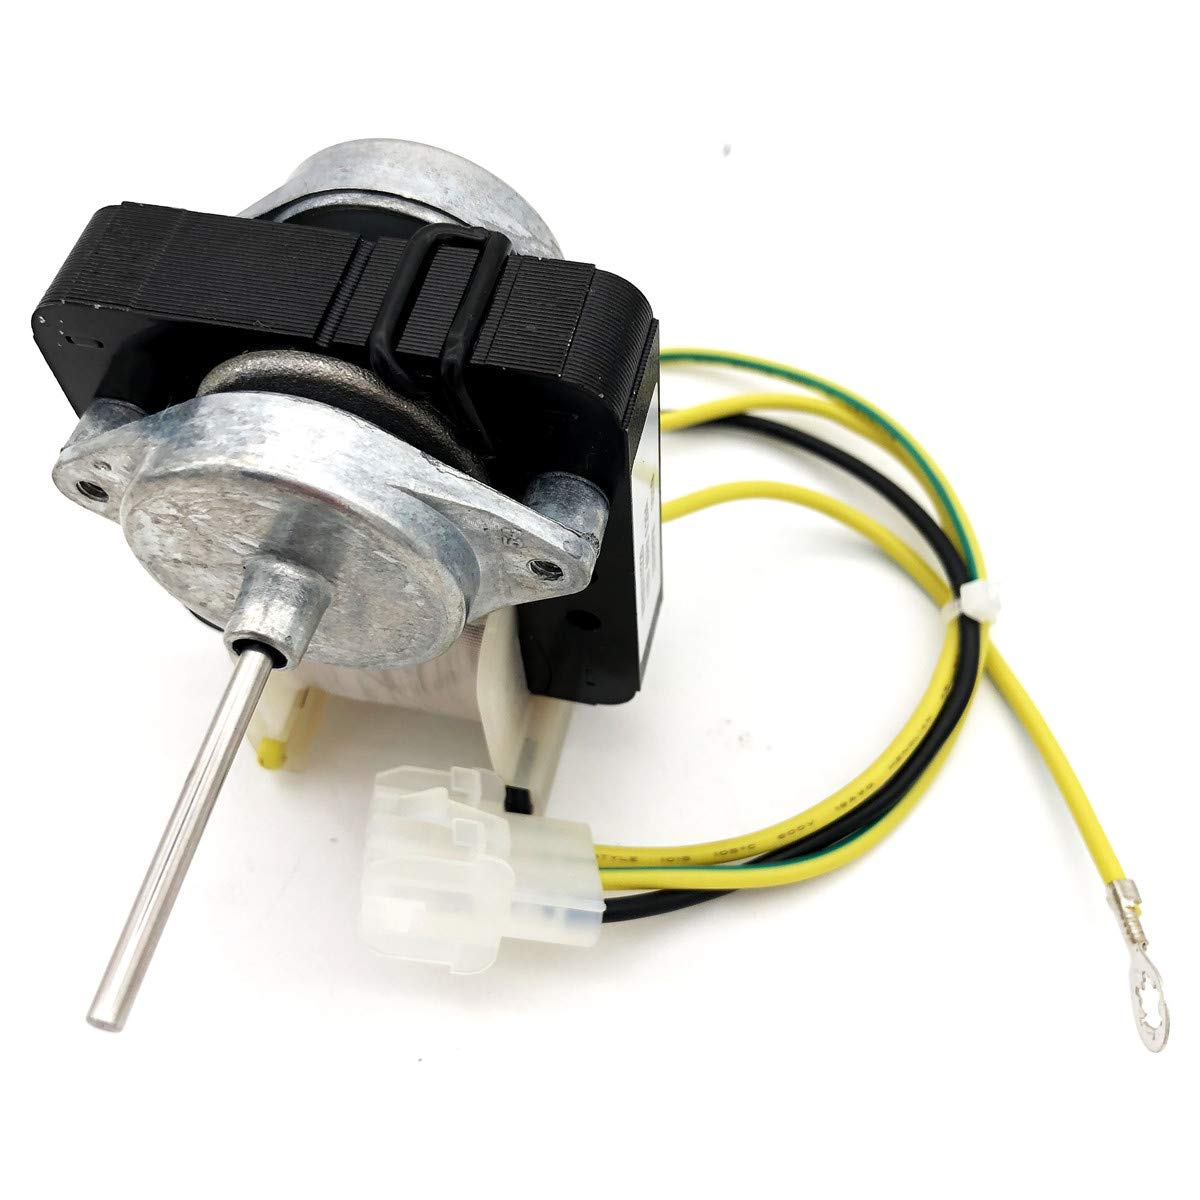 Refrigerator Condenser Cooling Fan Motor Replacement for Part# WR60X10220- Fit for General Electric GE Refrigerators Replaces AP4298602,1257132,AH1766247,EA1766247,PS1766247,WR60X10133,WR60X10171,WR60